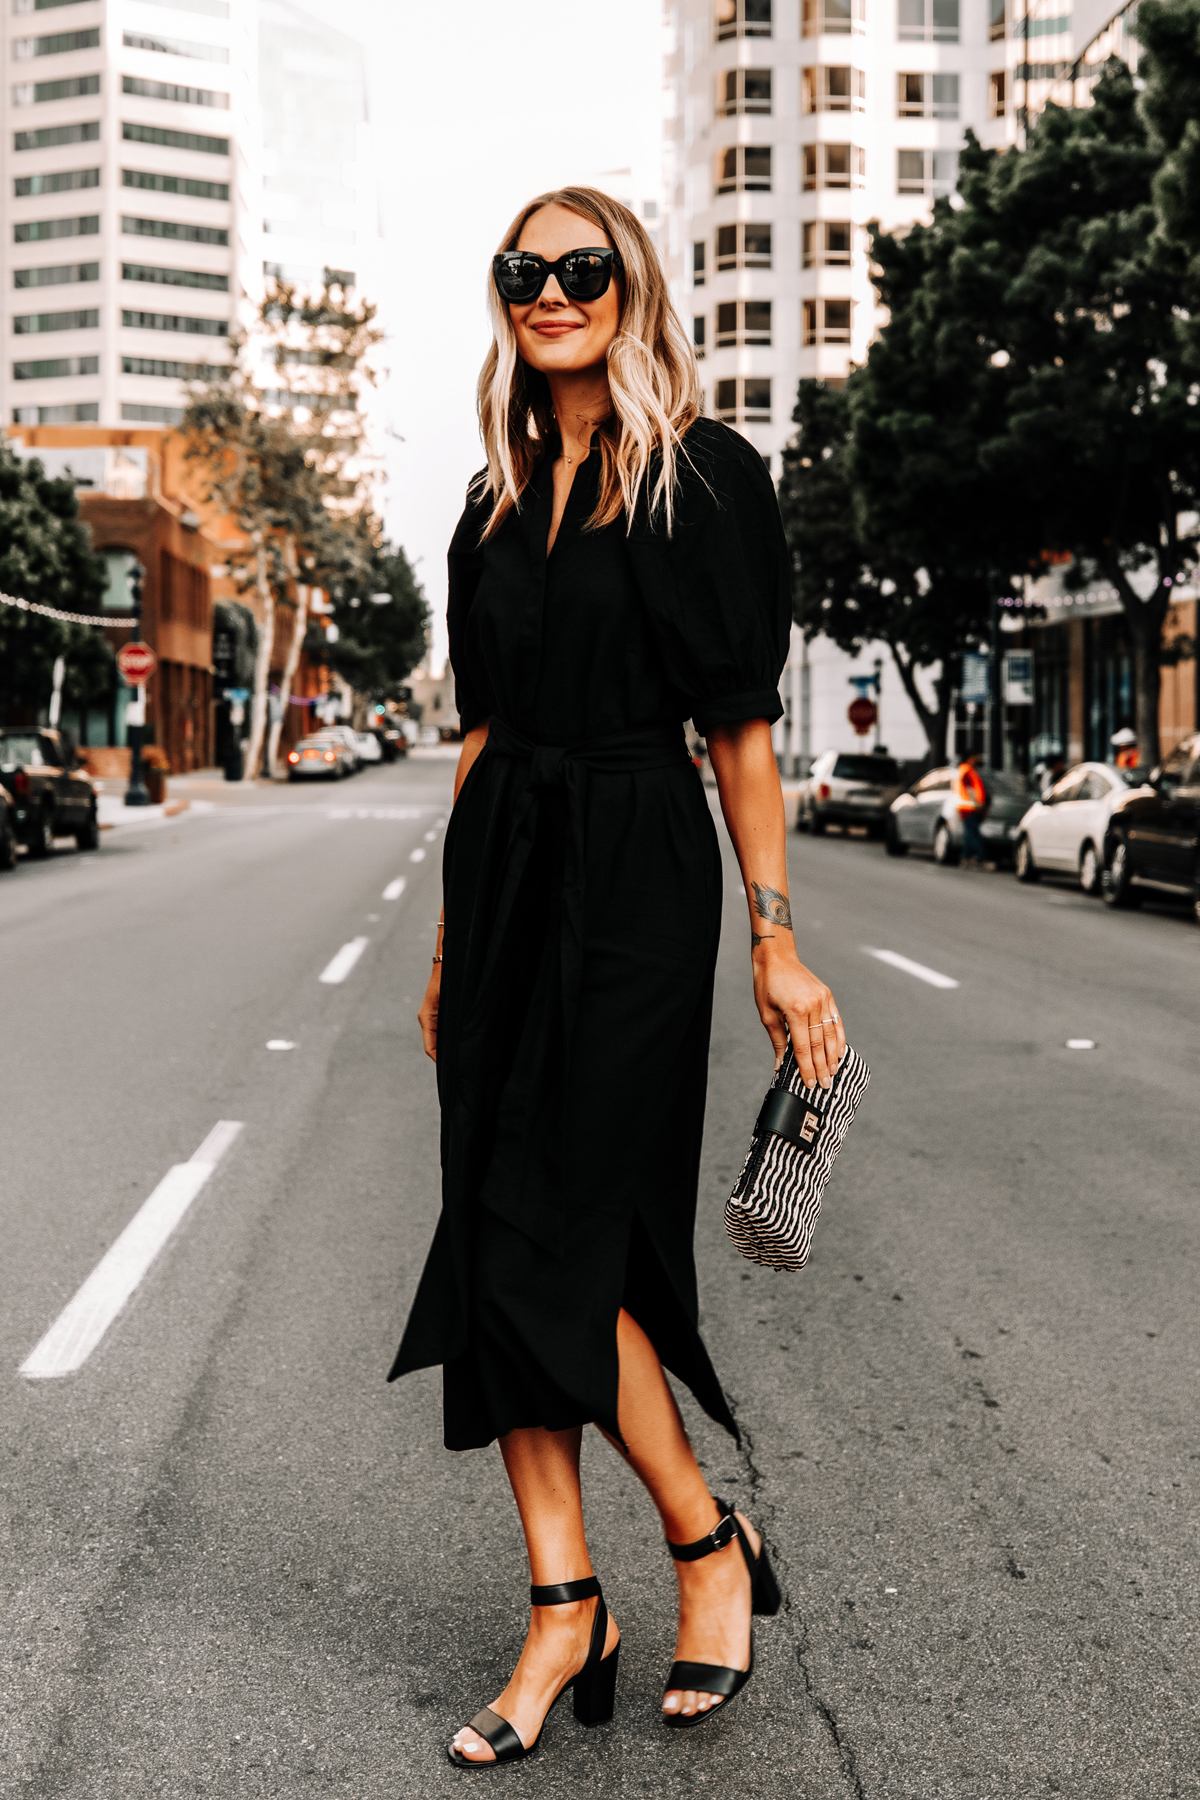 Fashion Jackson Wearing Ann Taylor Black Shirt Dress Black Heeled Sandals Black Tan Woven Clutch